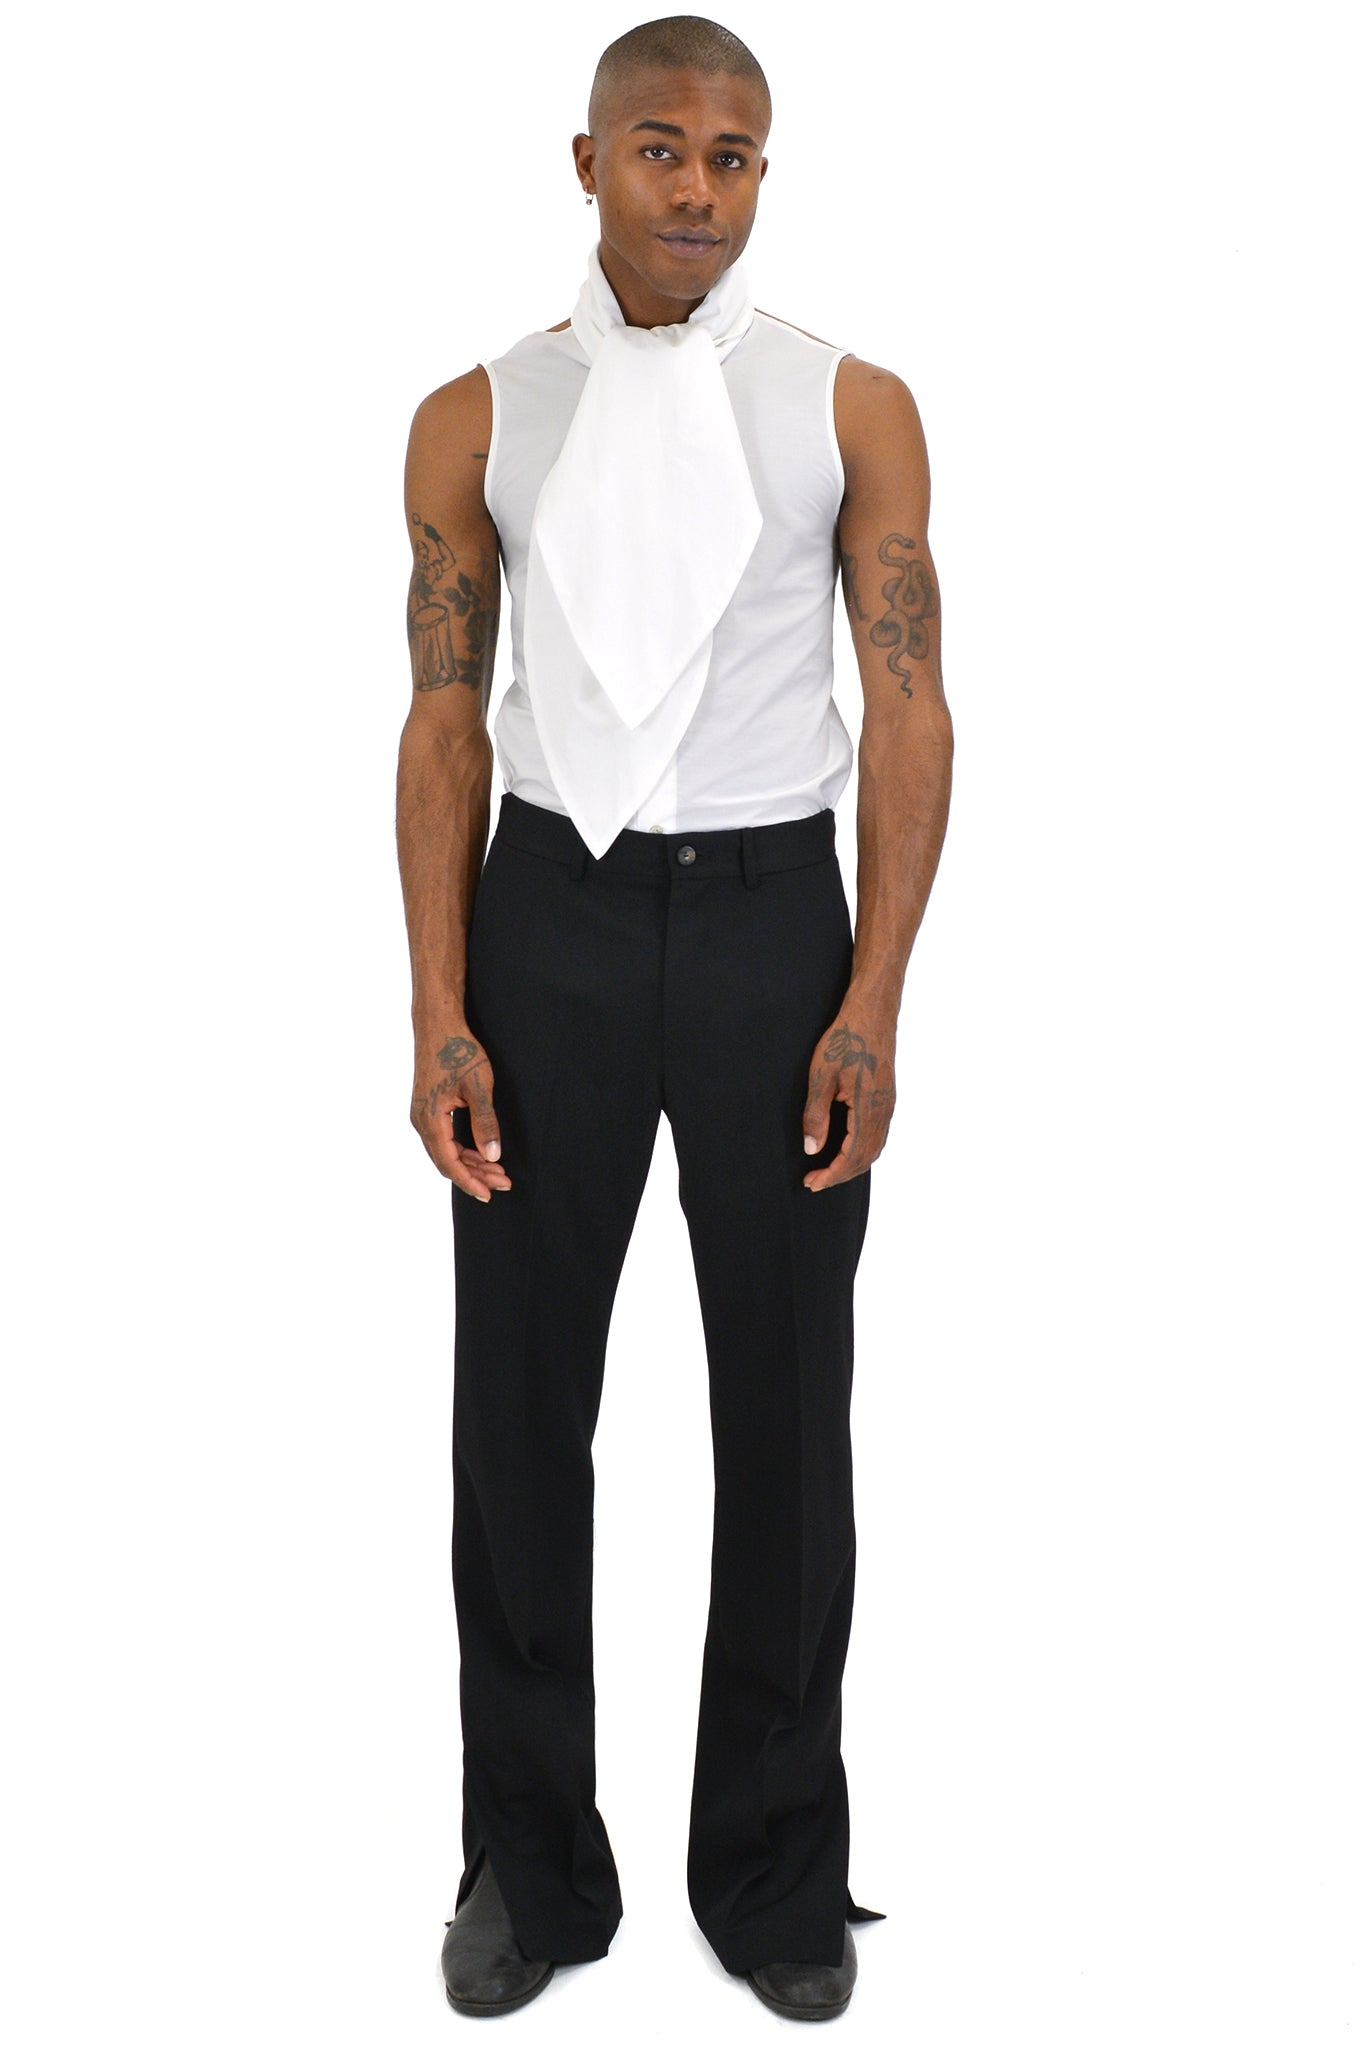 Telfar High-Collar Halter Top